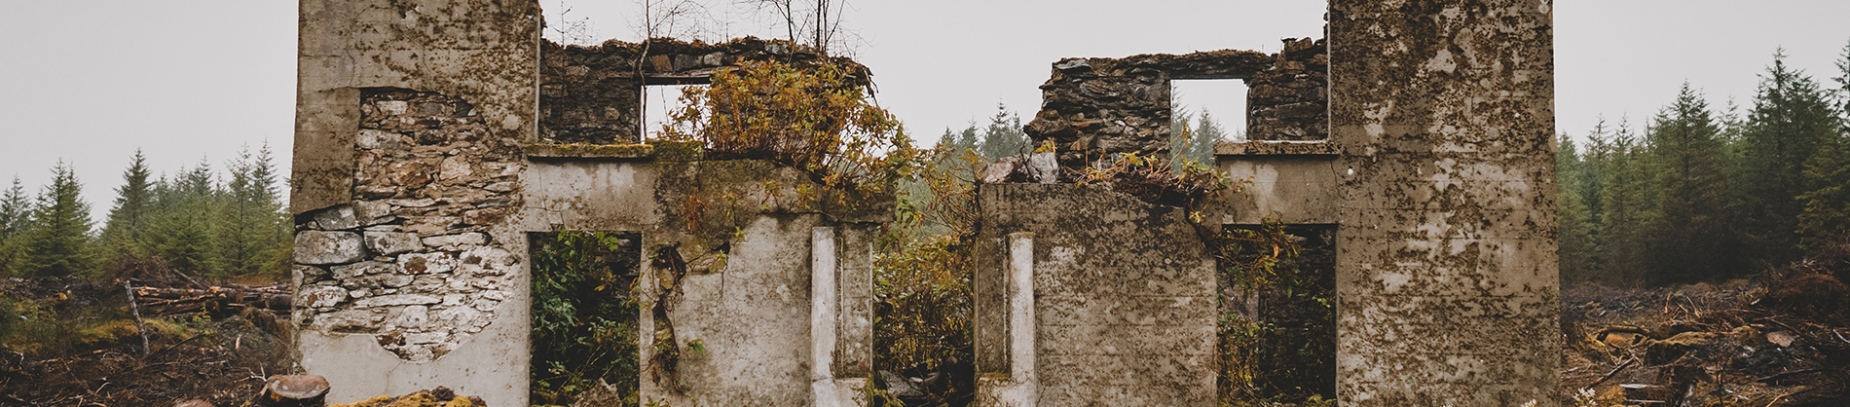 Ruined building with a forest behind